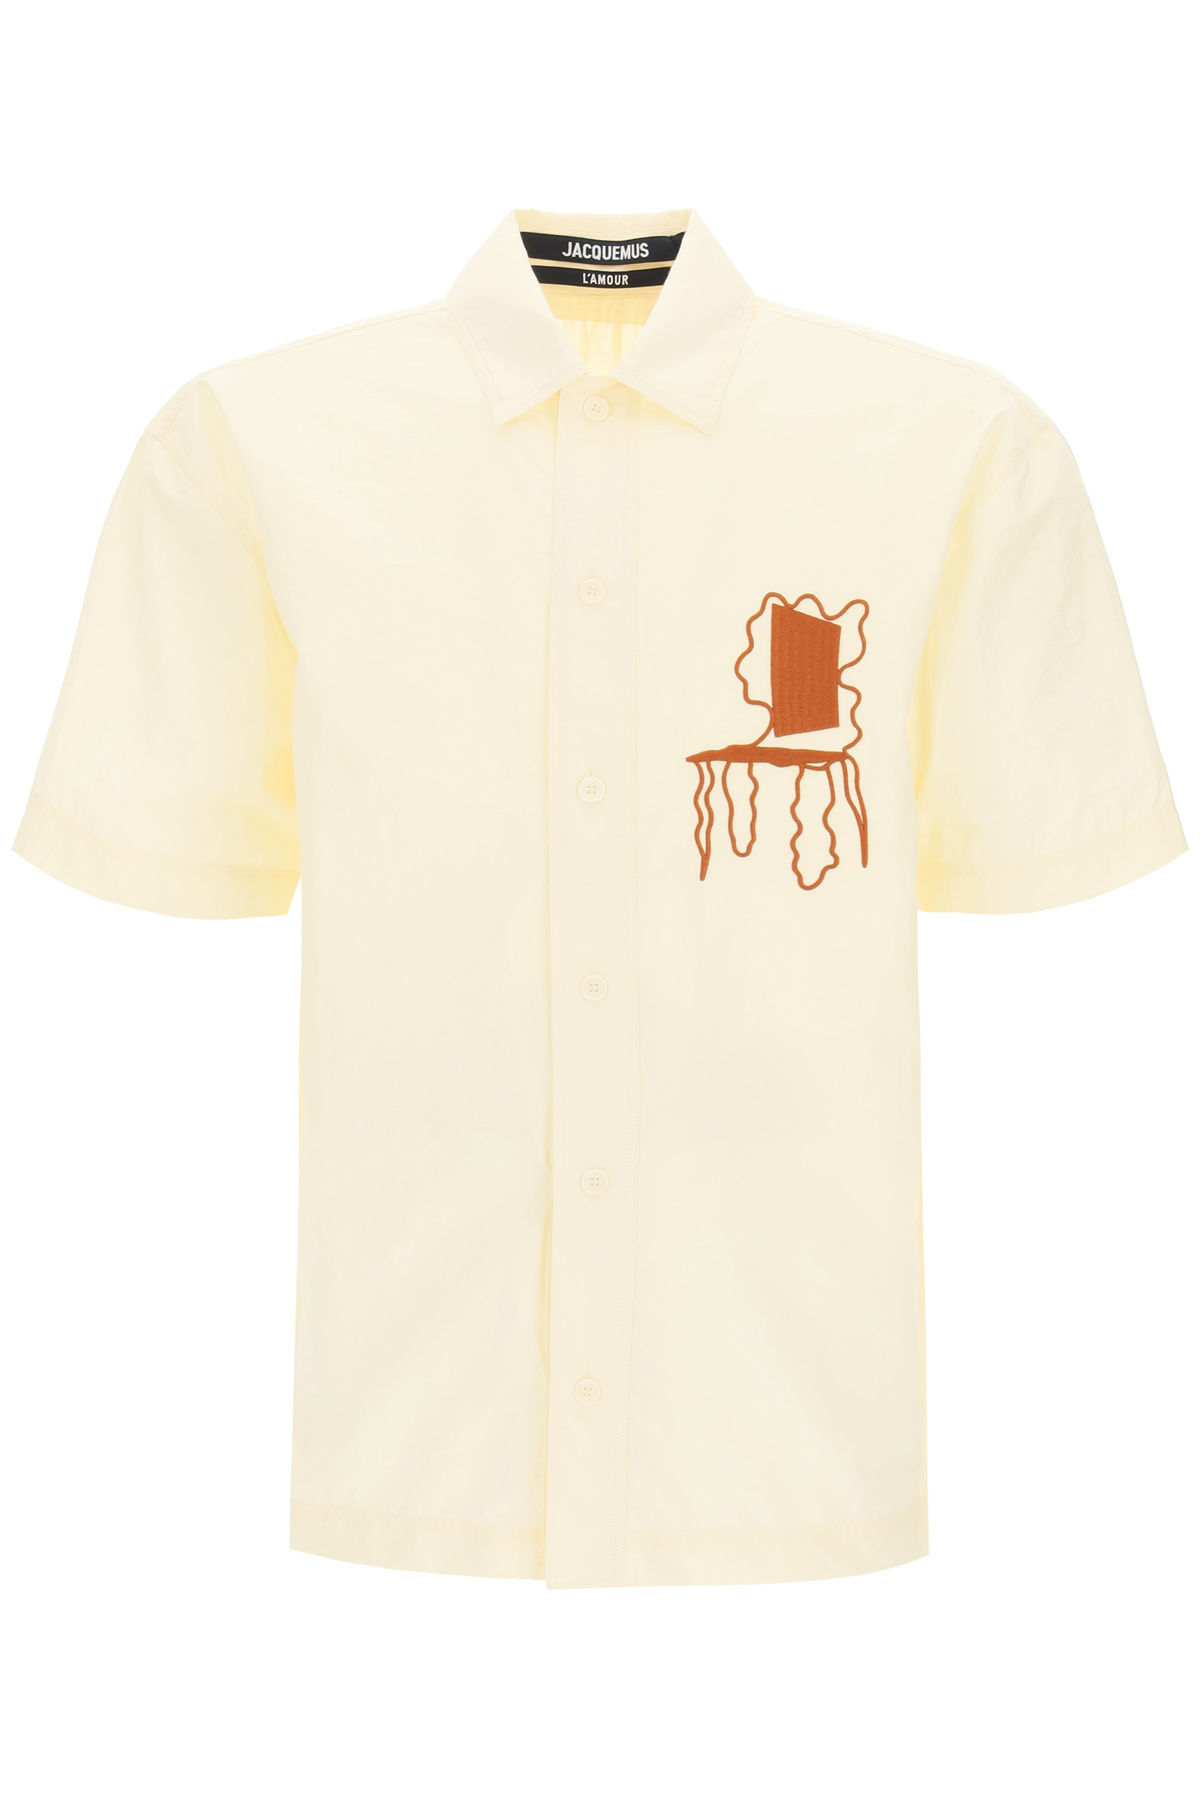 JACQUEMUS MOISSON SHIRT 50 Beige, Yellow, Brown Cotton